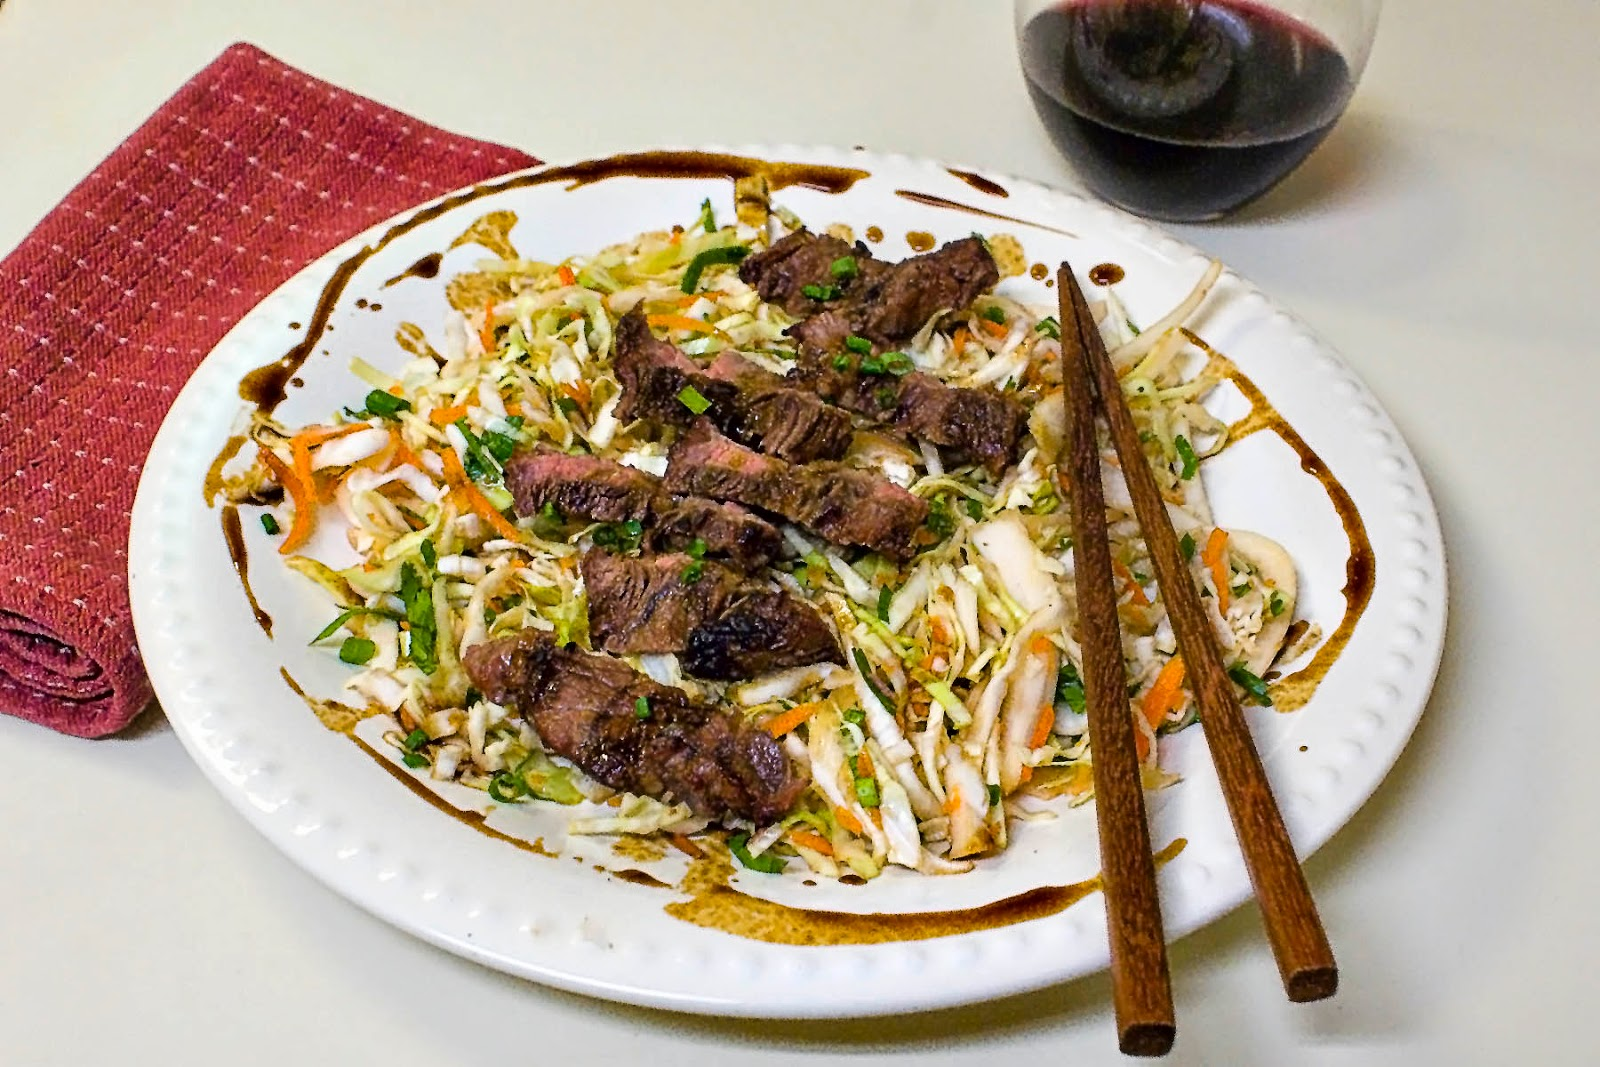 Vietnamese Grilled Steak Salad with Cabbage and Peanuts